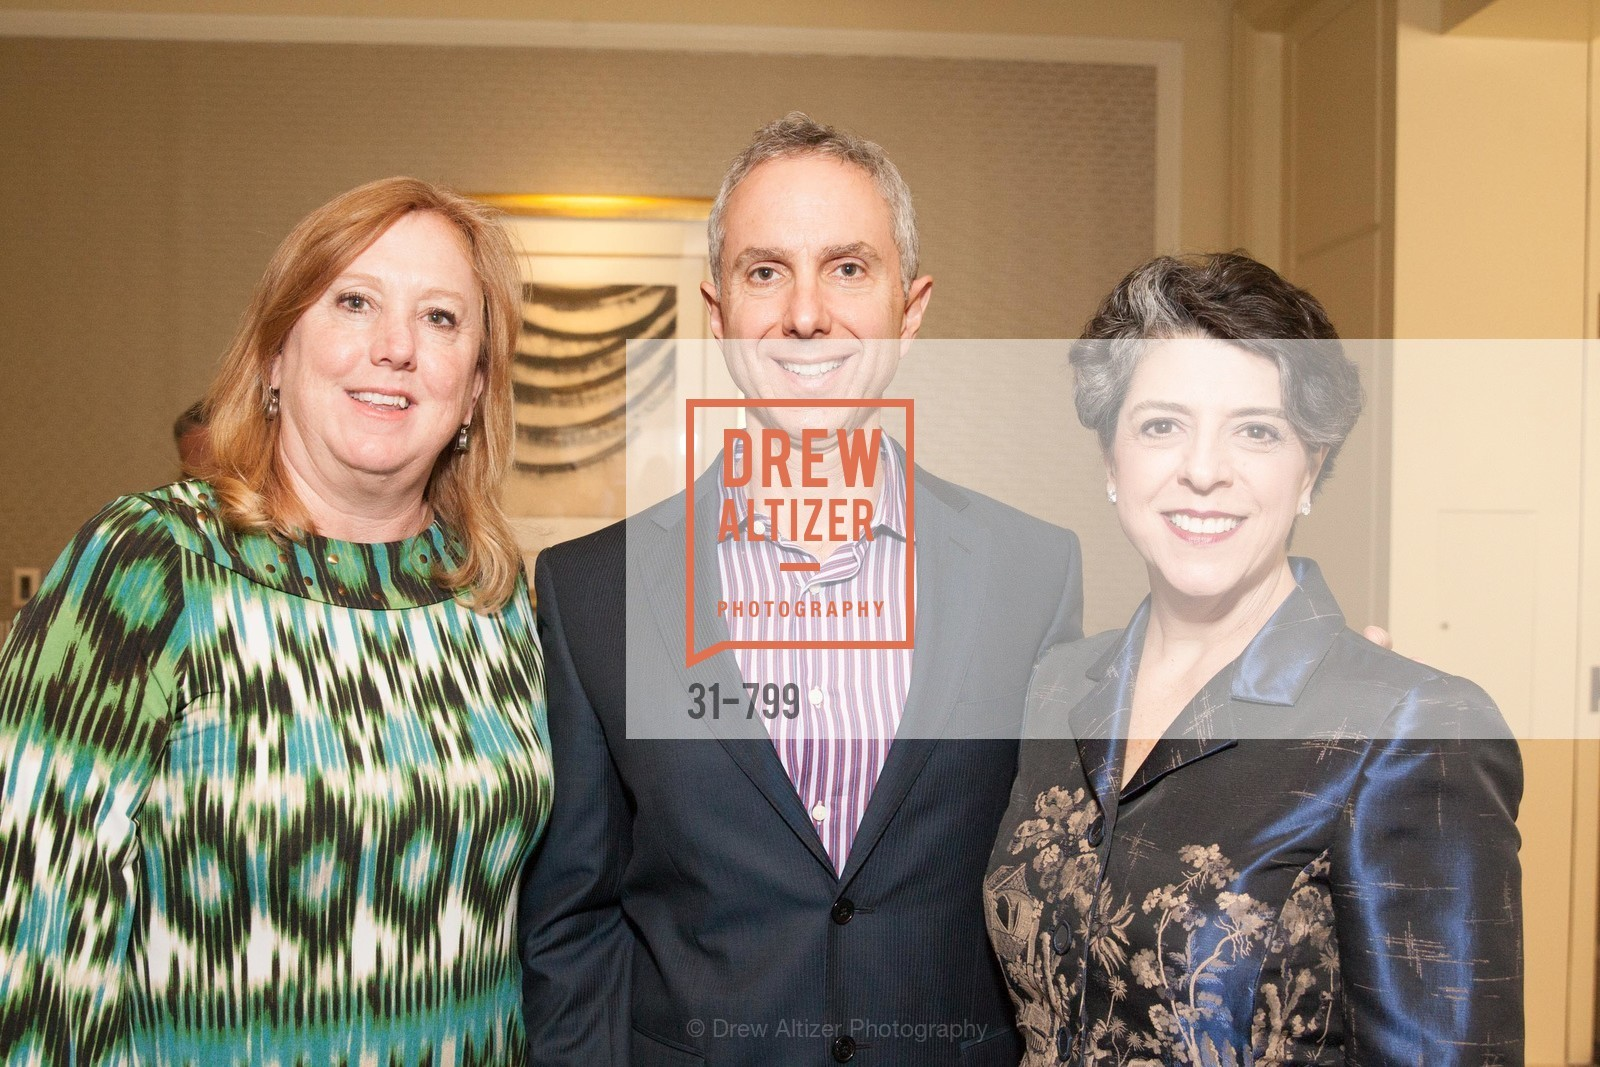 Barbara Bates, Jennifer Glass, COMPASSION & CHOICES - Empowerment Luncheon, US, April 24th, 2015,Drew Altizer, Drew Altizer Photography, full-service event agency, private events, San Francisco photographer, photographer California